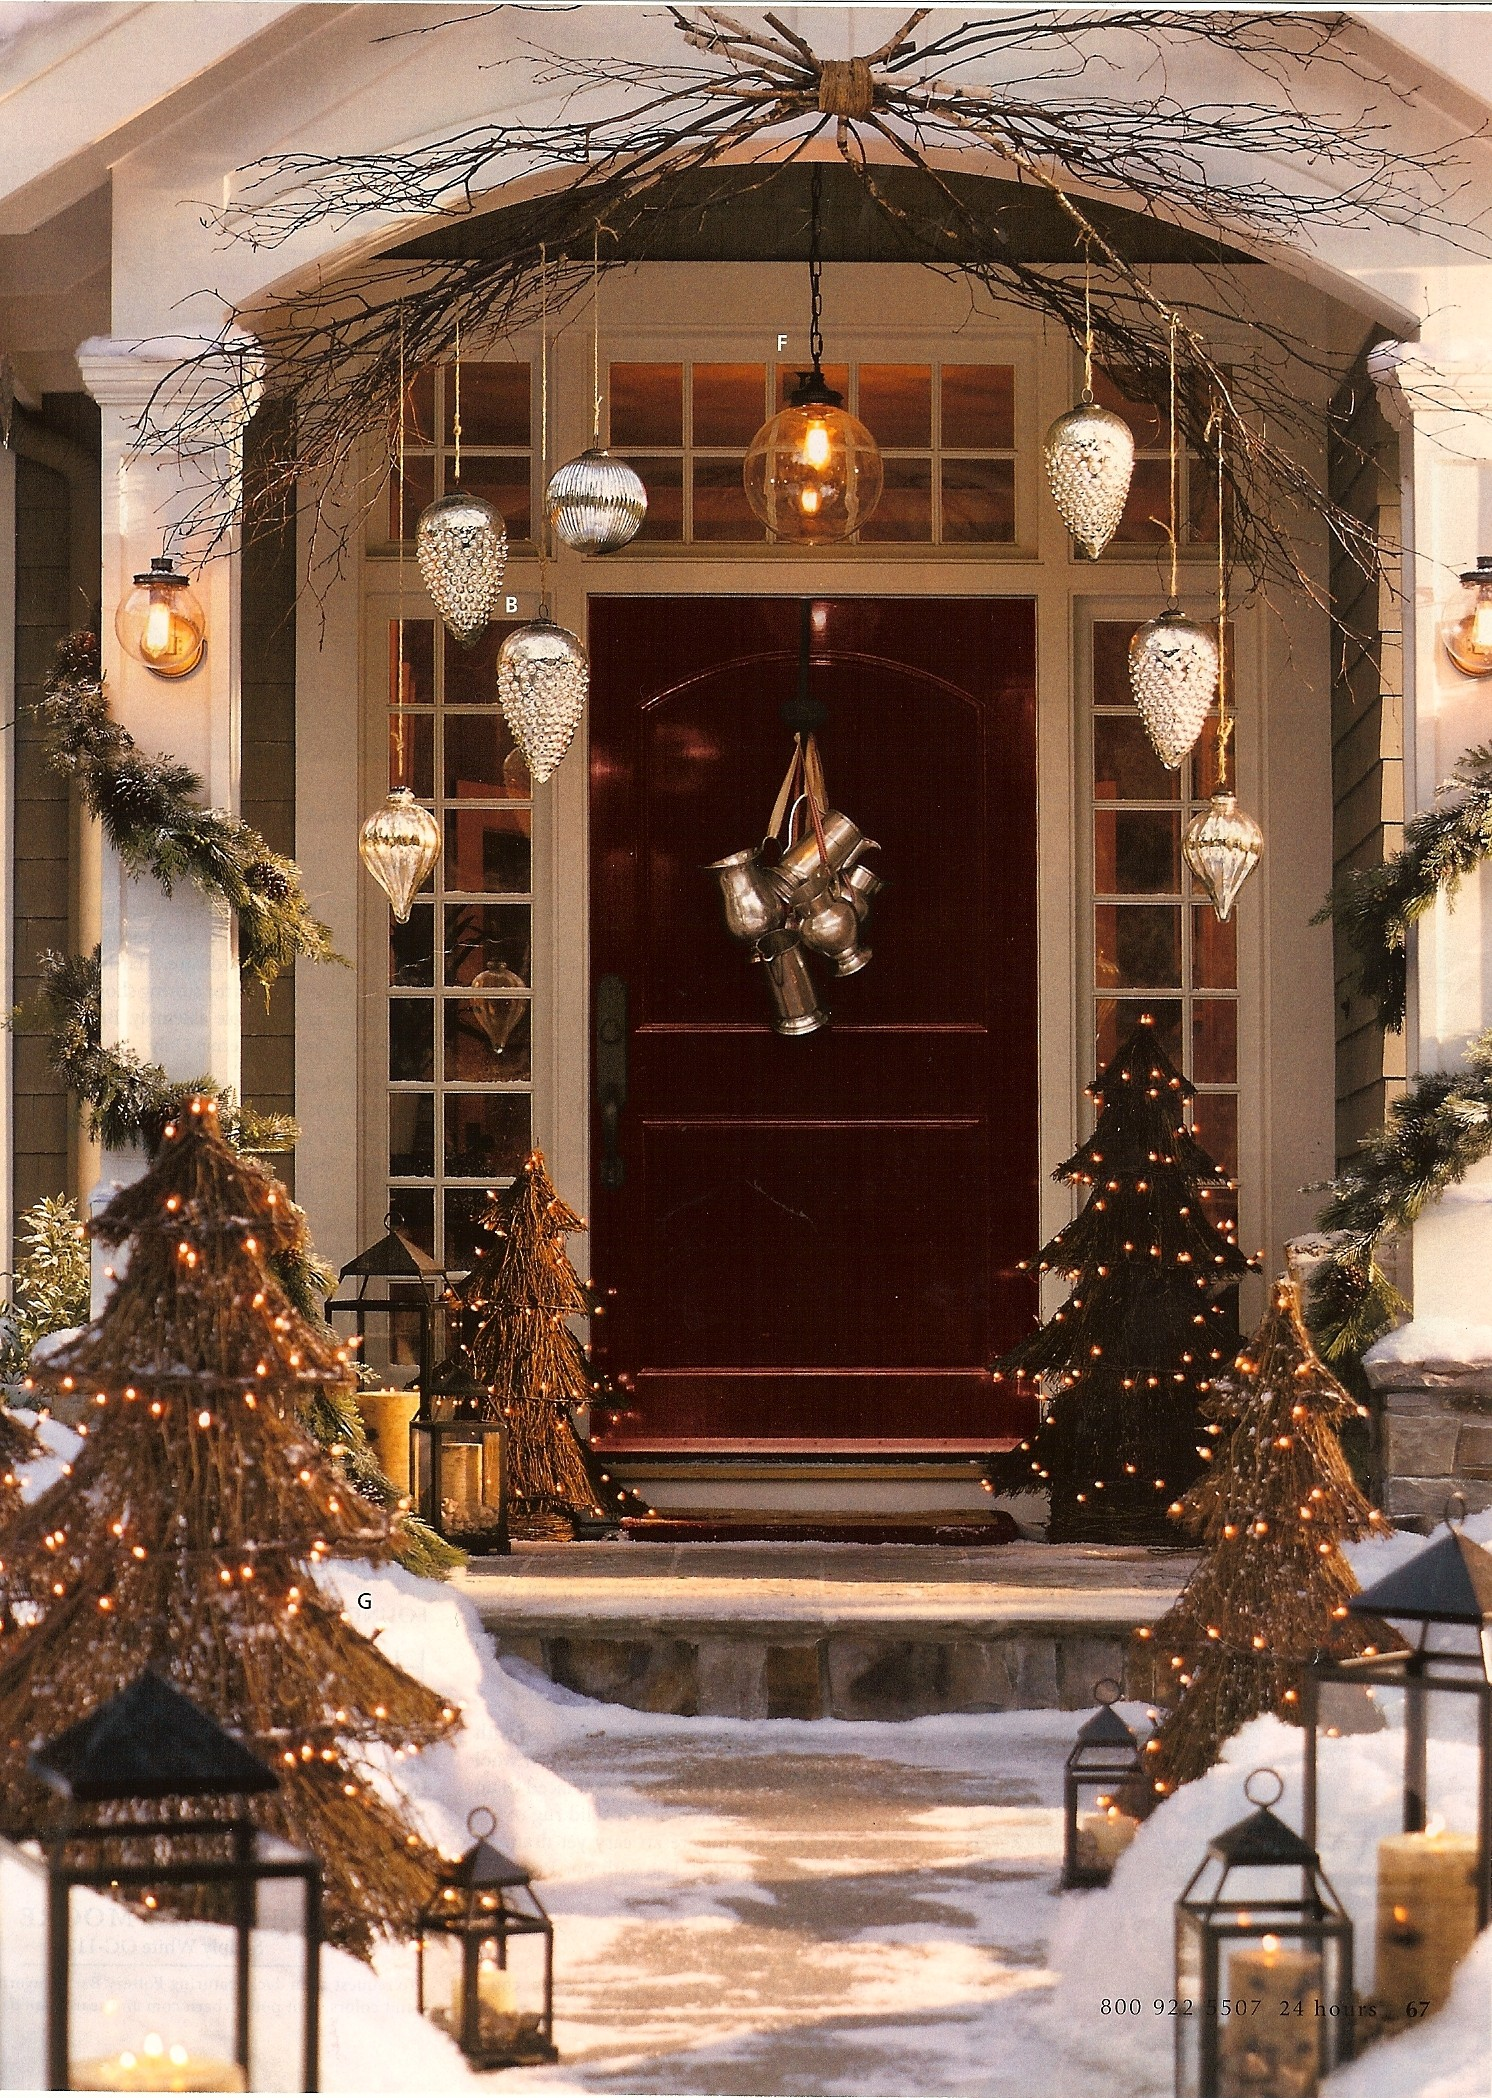 Outdoor decorating for christmas - 12 Shimmery And Chic Metallics